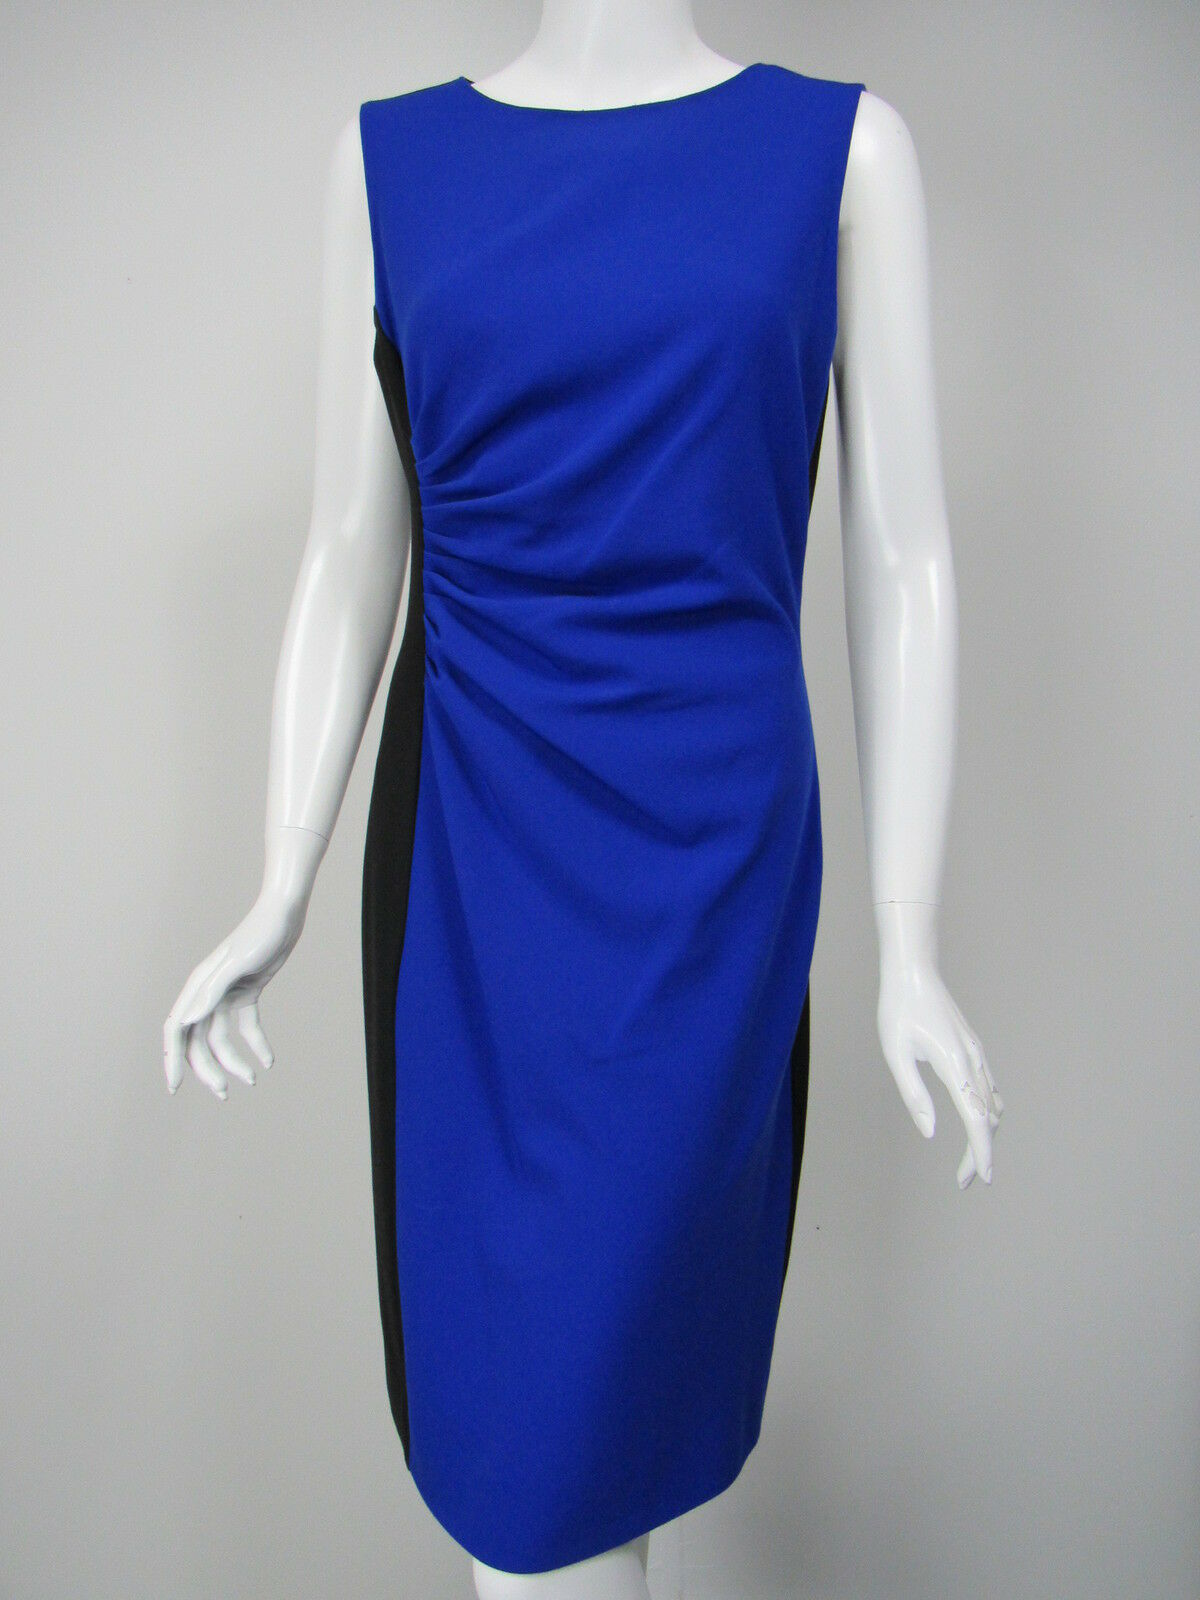 DIANE VON FURSTENBERG Laura schwarz Royal Blau Ponte Knit Sheath Dress sz 10